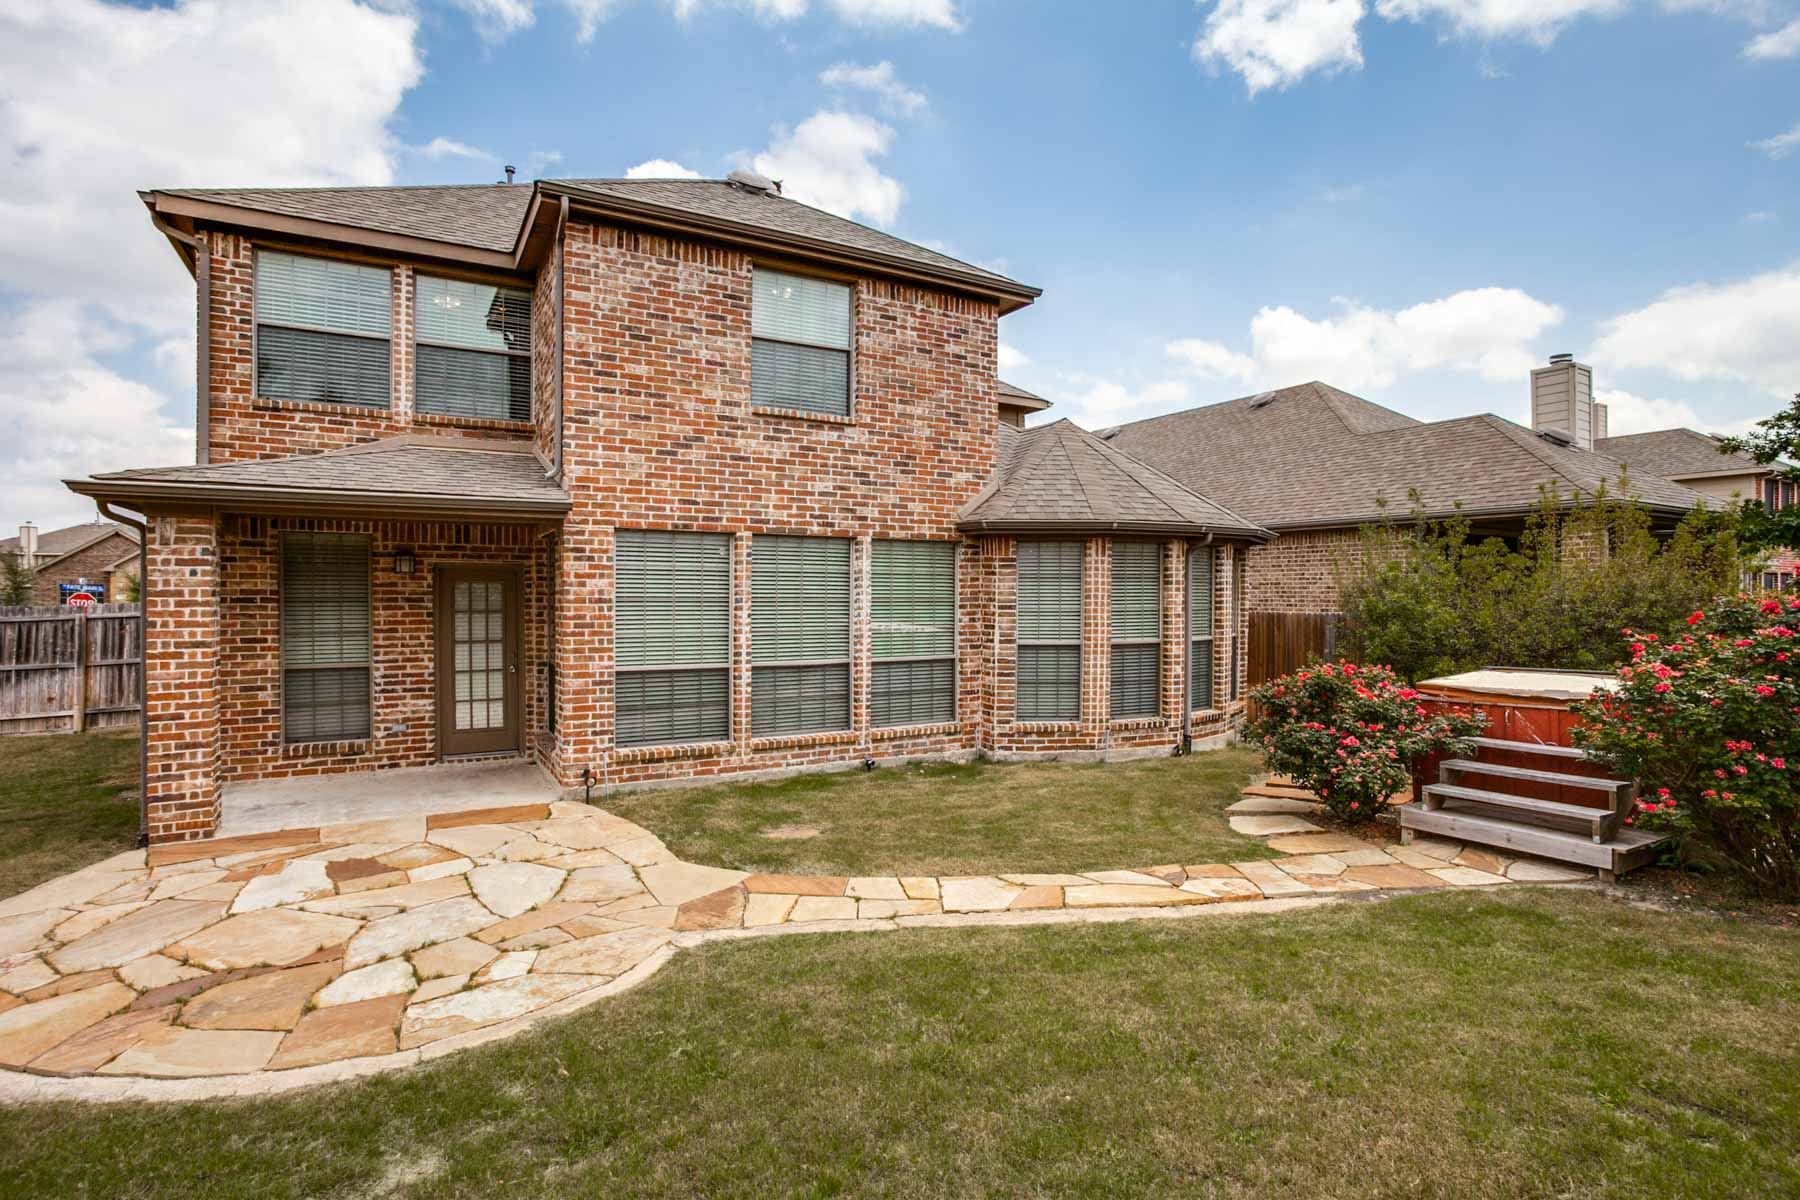 Single Family Home for Sale at Welcoming Woodcreek Home 625 Fate Main Pl Rockwall, Texas 75087 United States